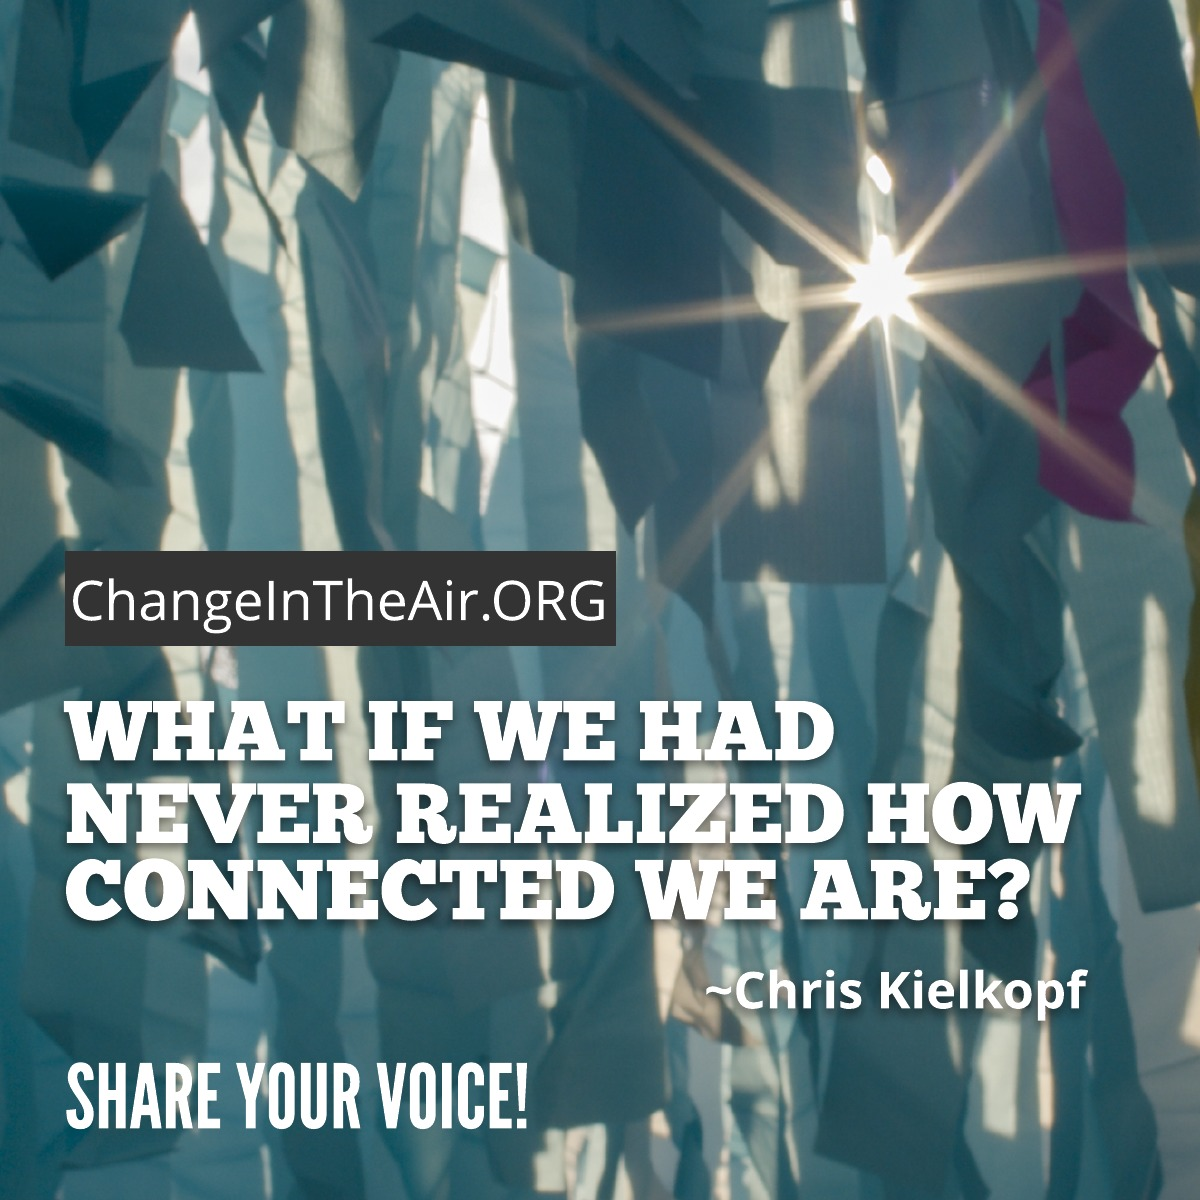 Change in the Air message. What if we had never realized how connect we are?